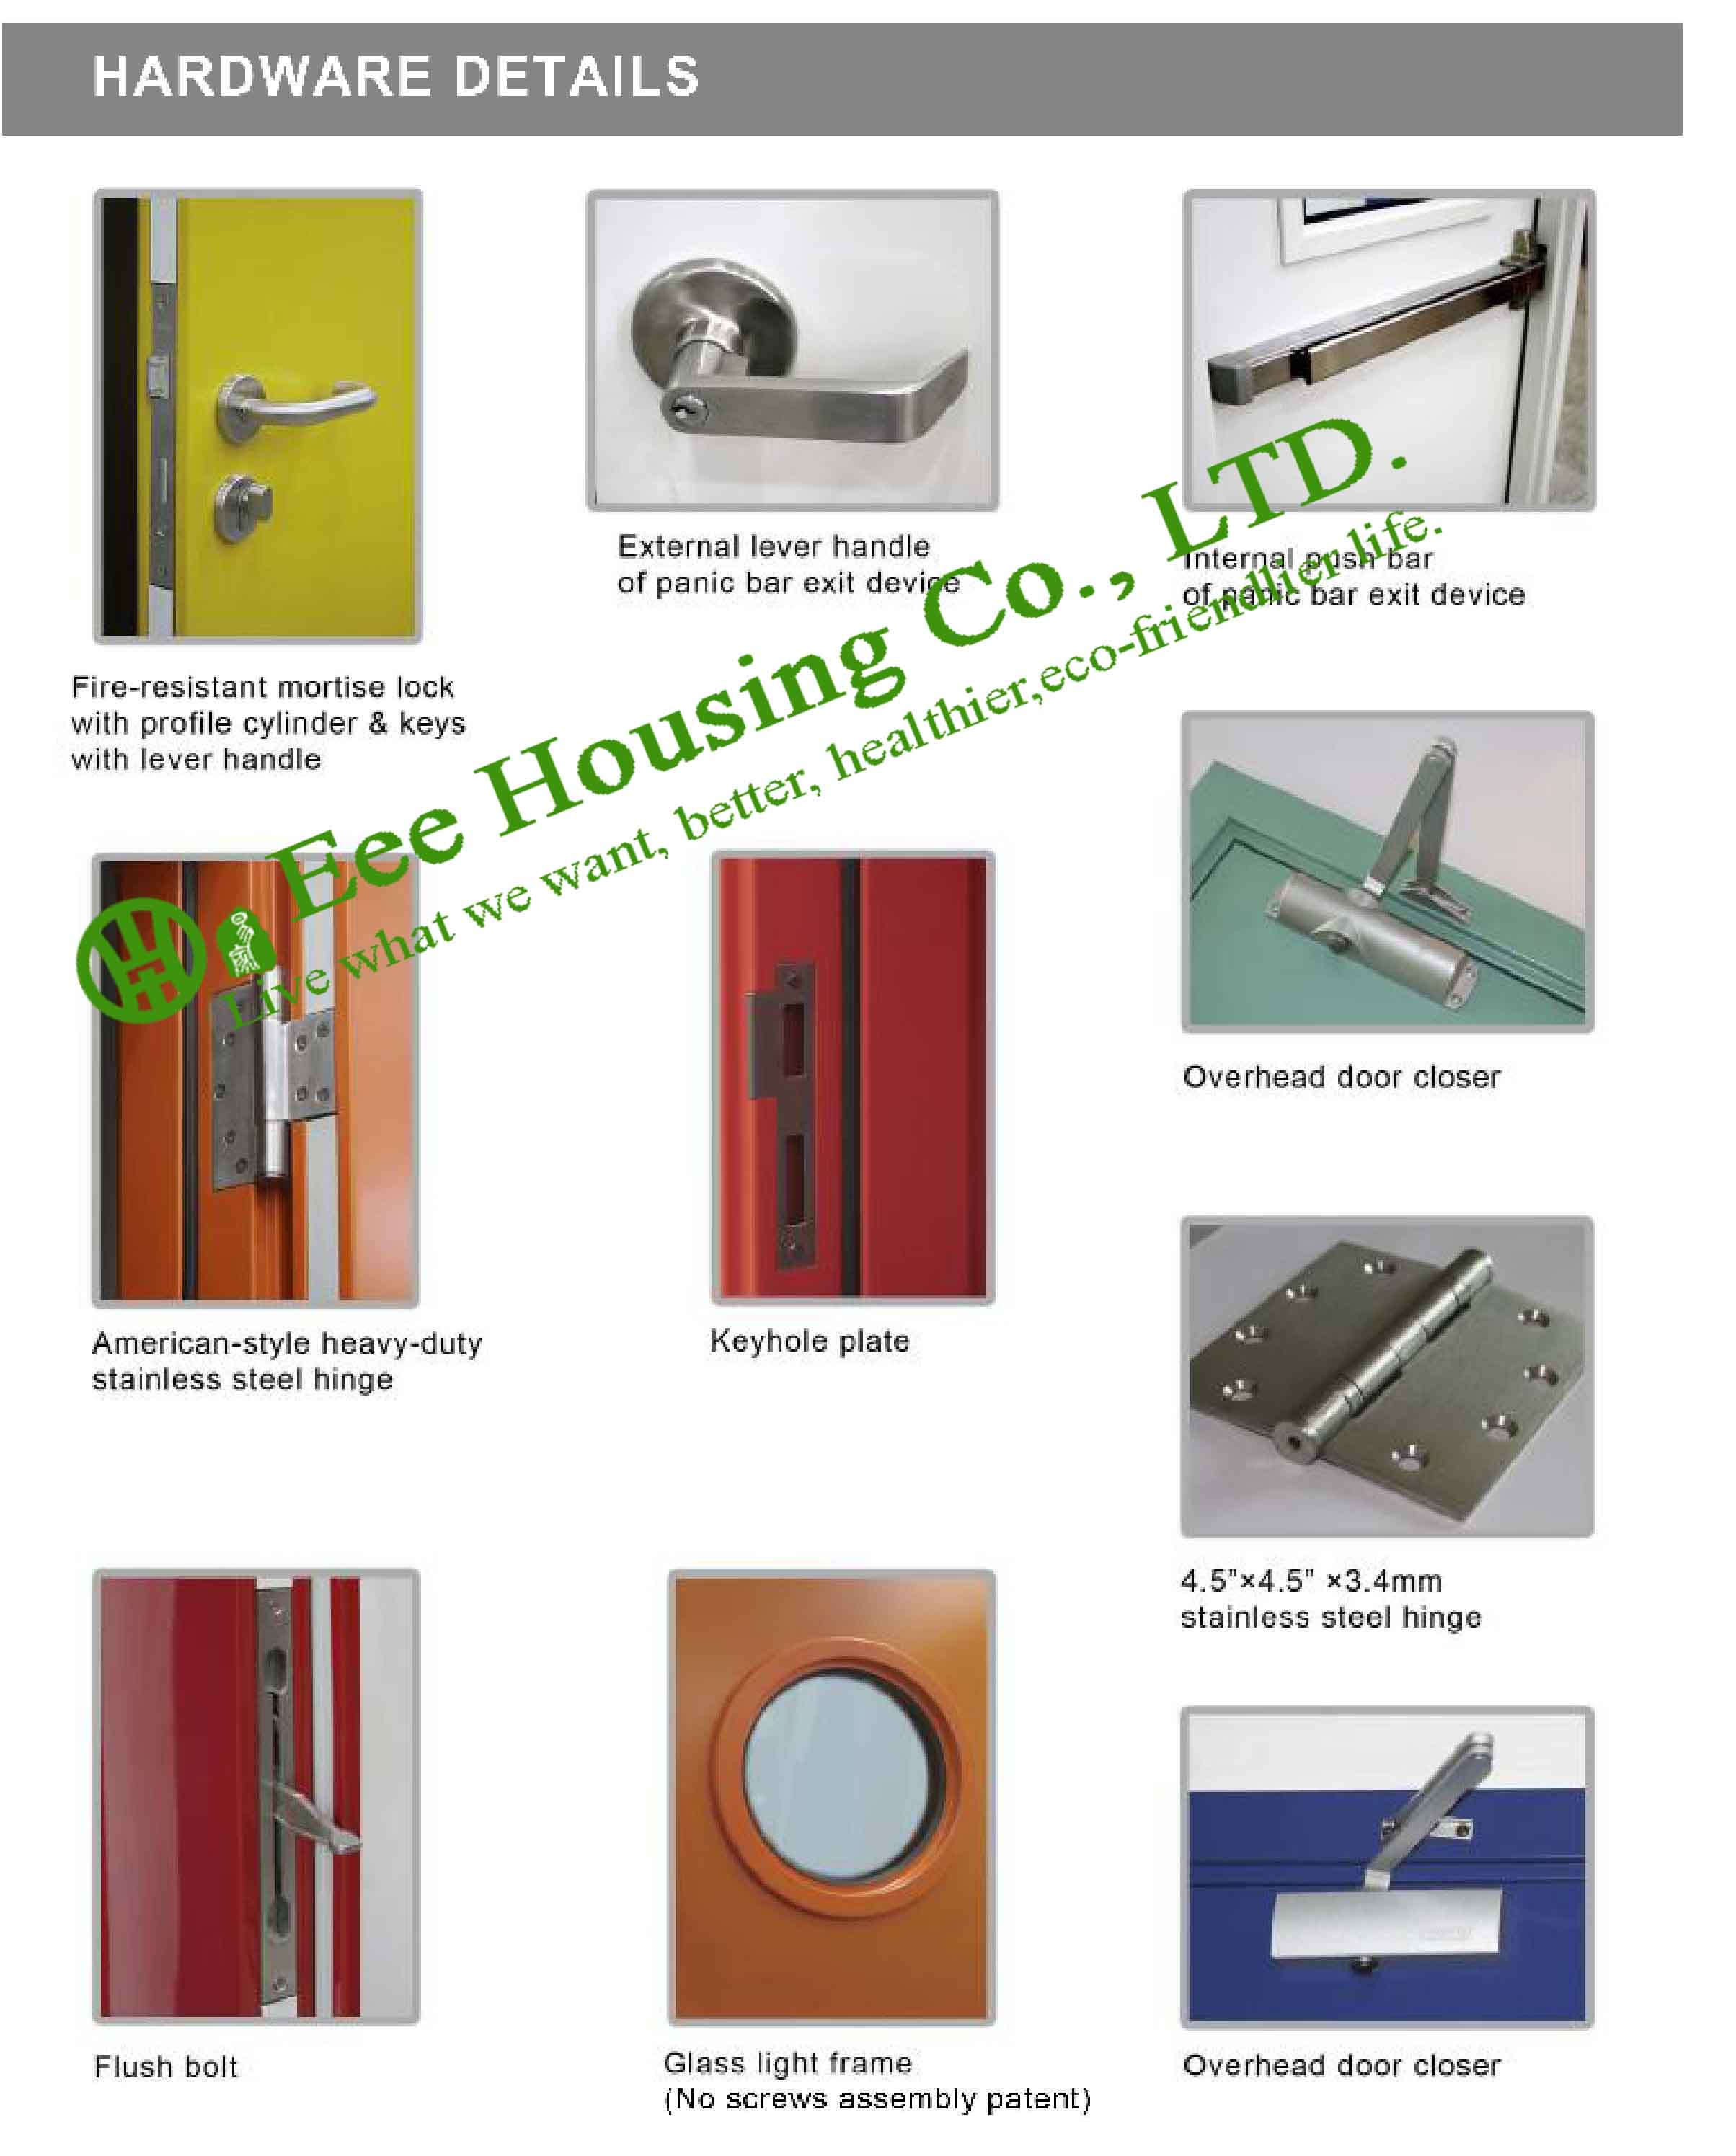 90 Min Stainless Steel Single Fire Resistant Doors For Ant Door Manufacturer From China 106294111